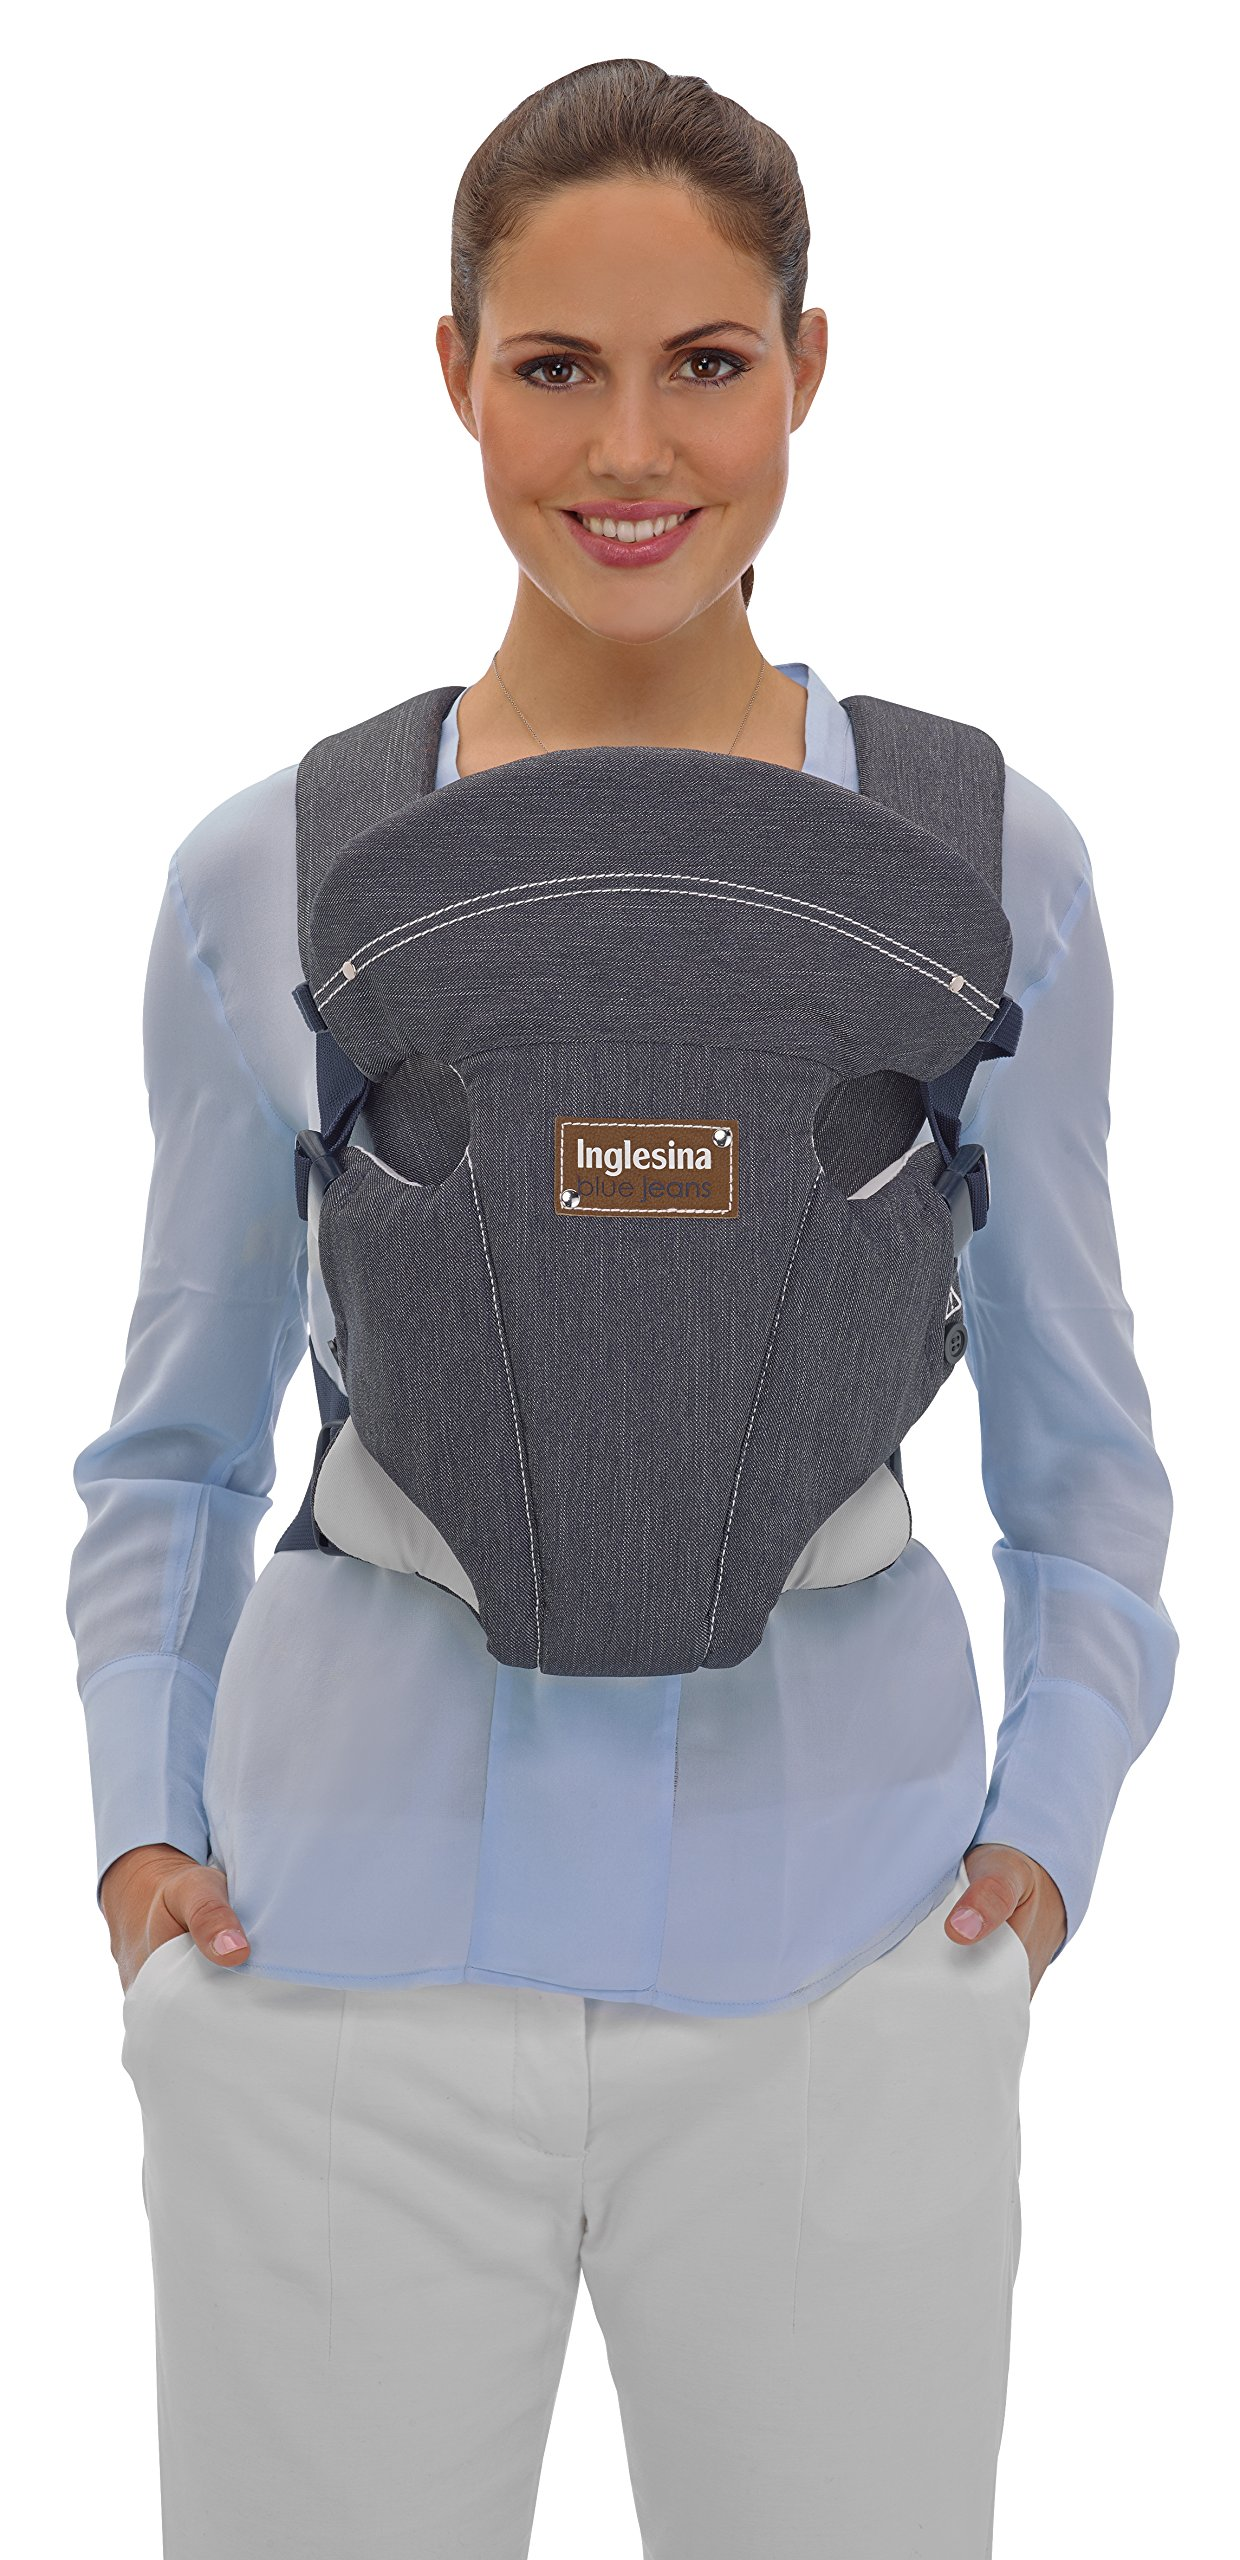 Inglesina Baby Carrier Front Inglesina Comfortable and easy-to-use adjusting belts Comfortable and wide shoulder braces for ultimate support Useful washable and removable bib 2